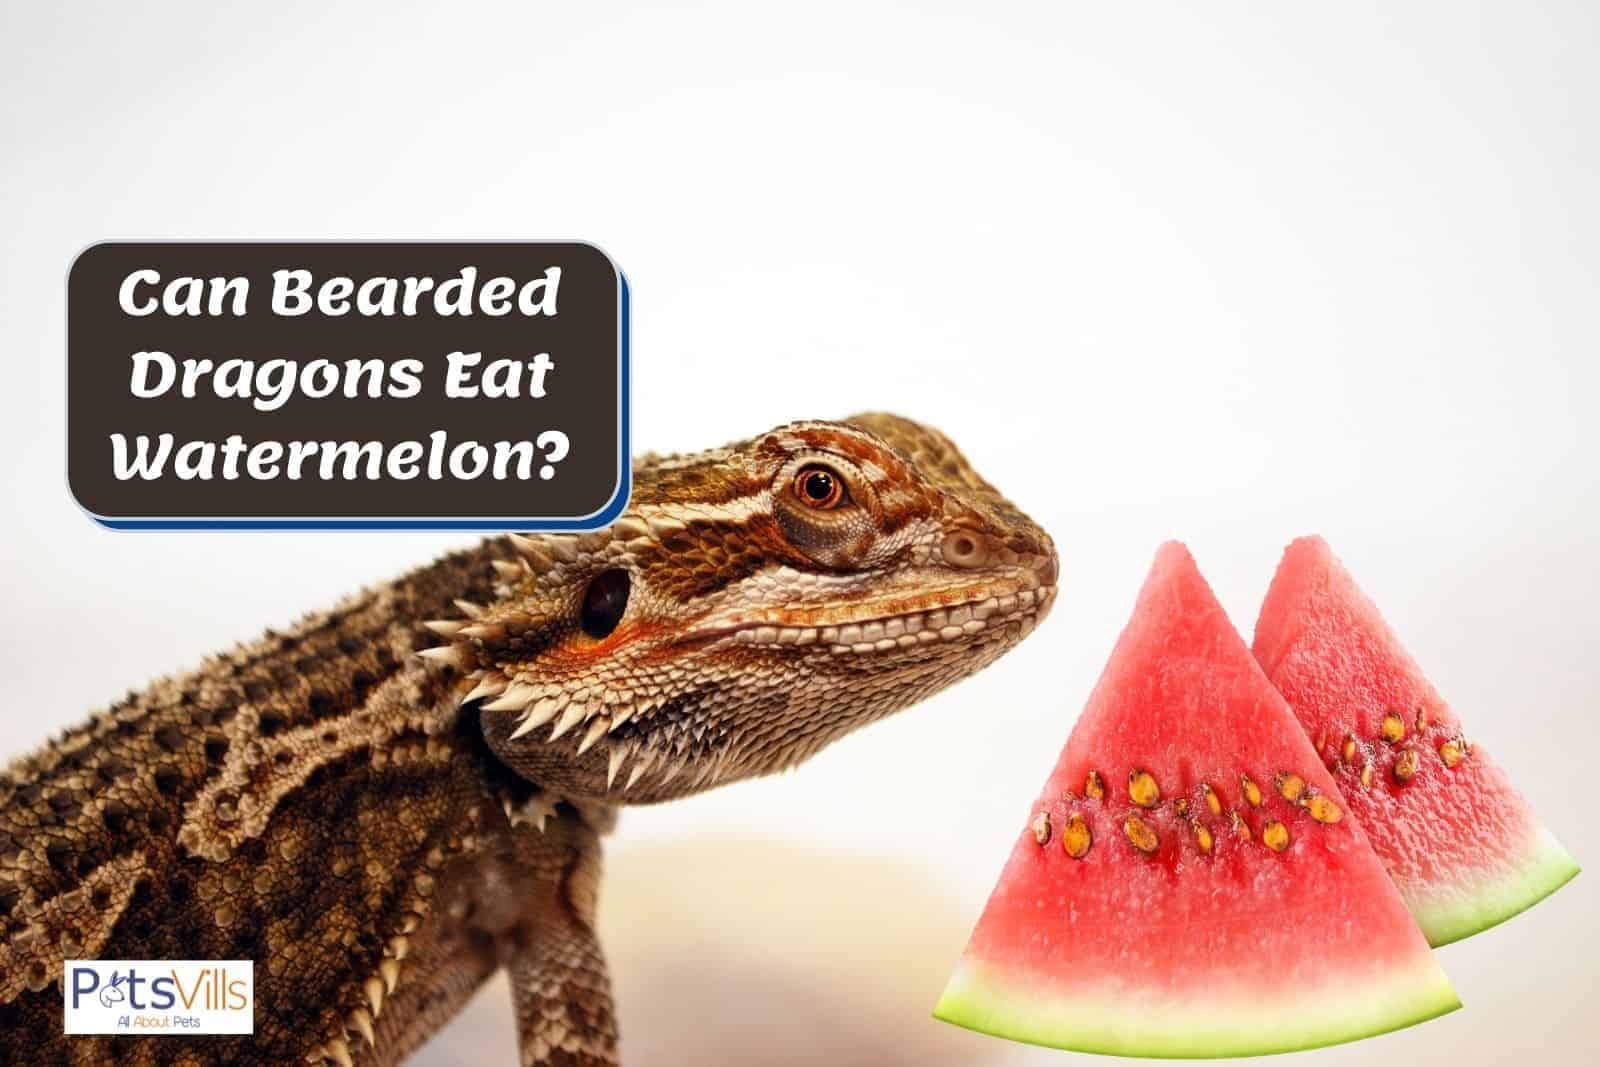 bearded dragon and fresh slices of watermelon: can bearded dragons eat watermelon?